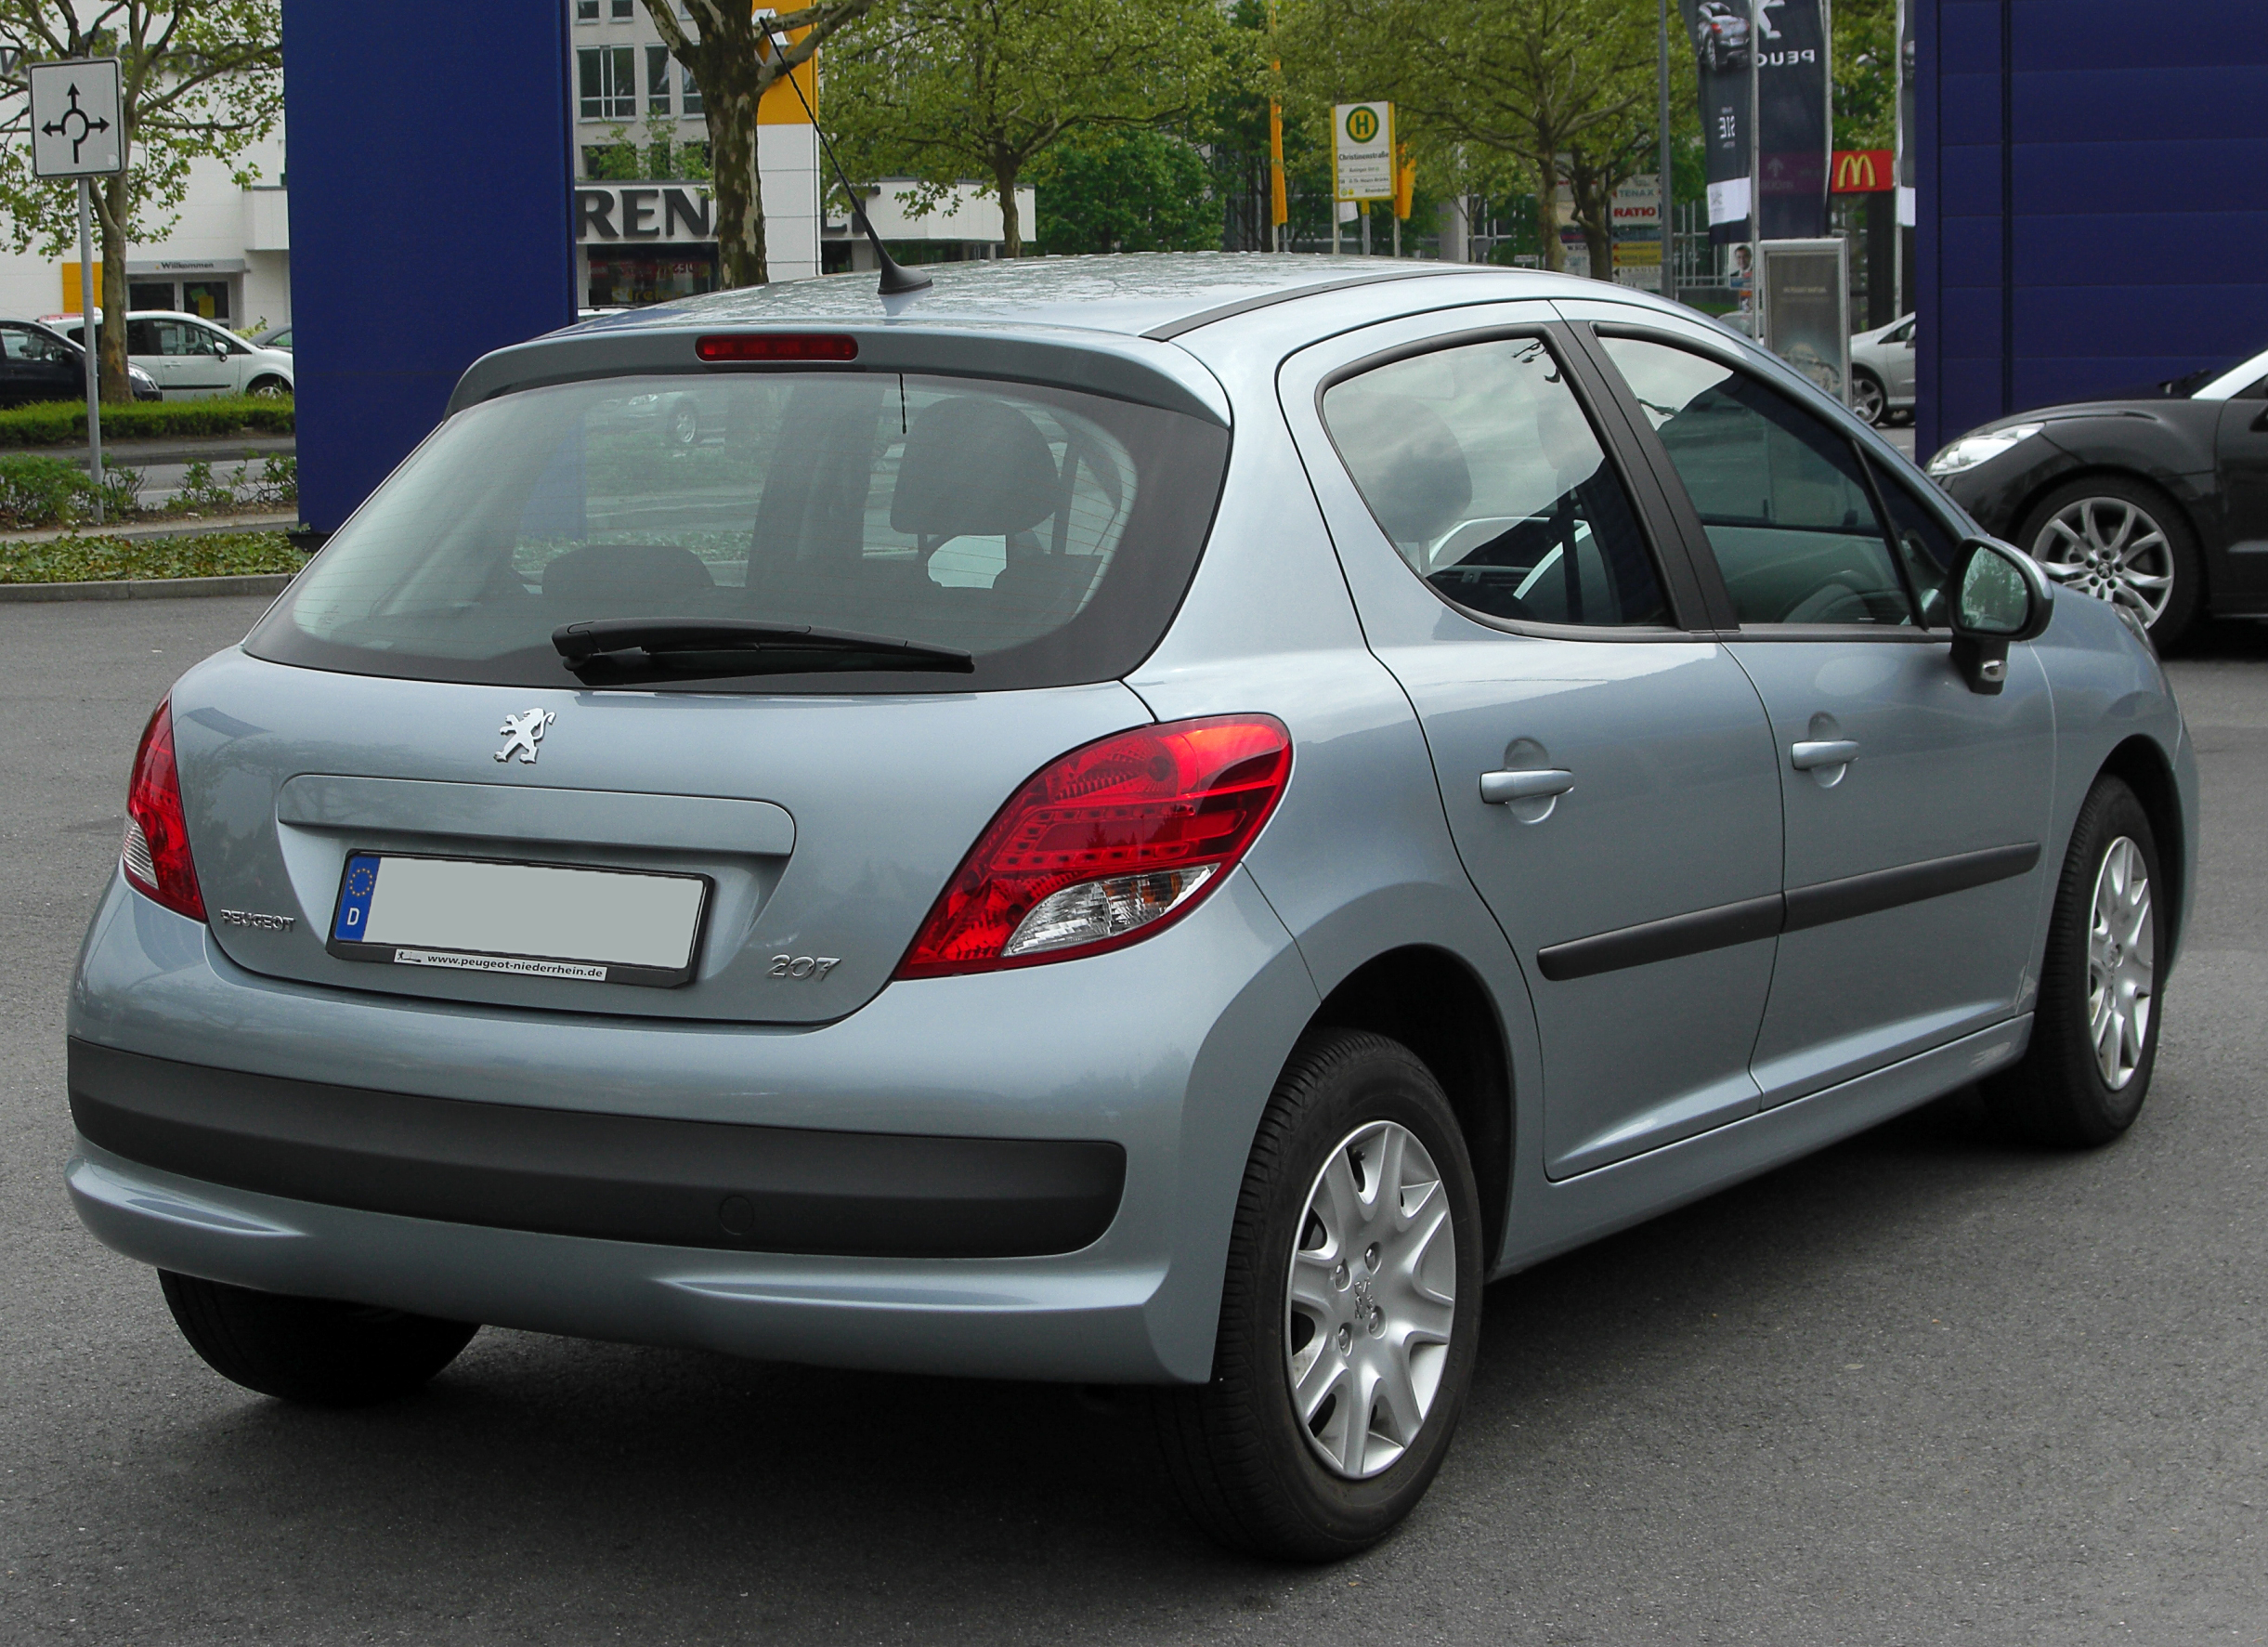 file peugeot 207 facelift rear wikimedia commons. Black Bedroom Furniture Sets. Home Design Ideas